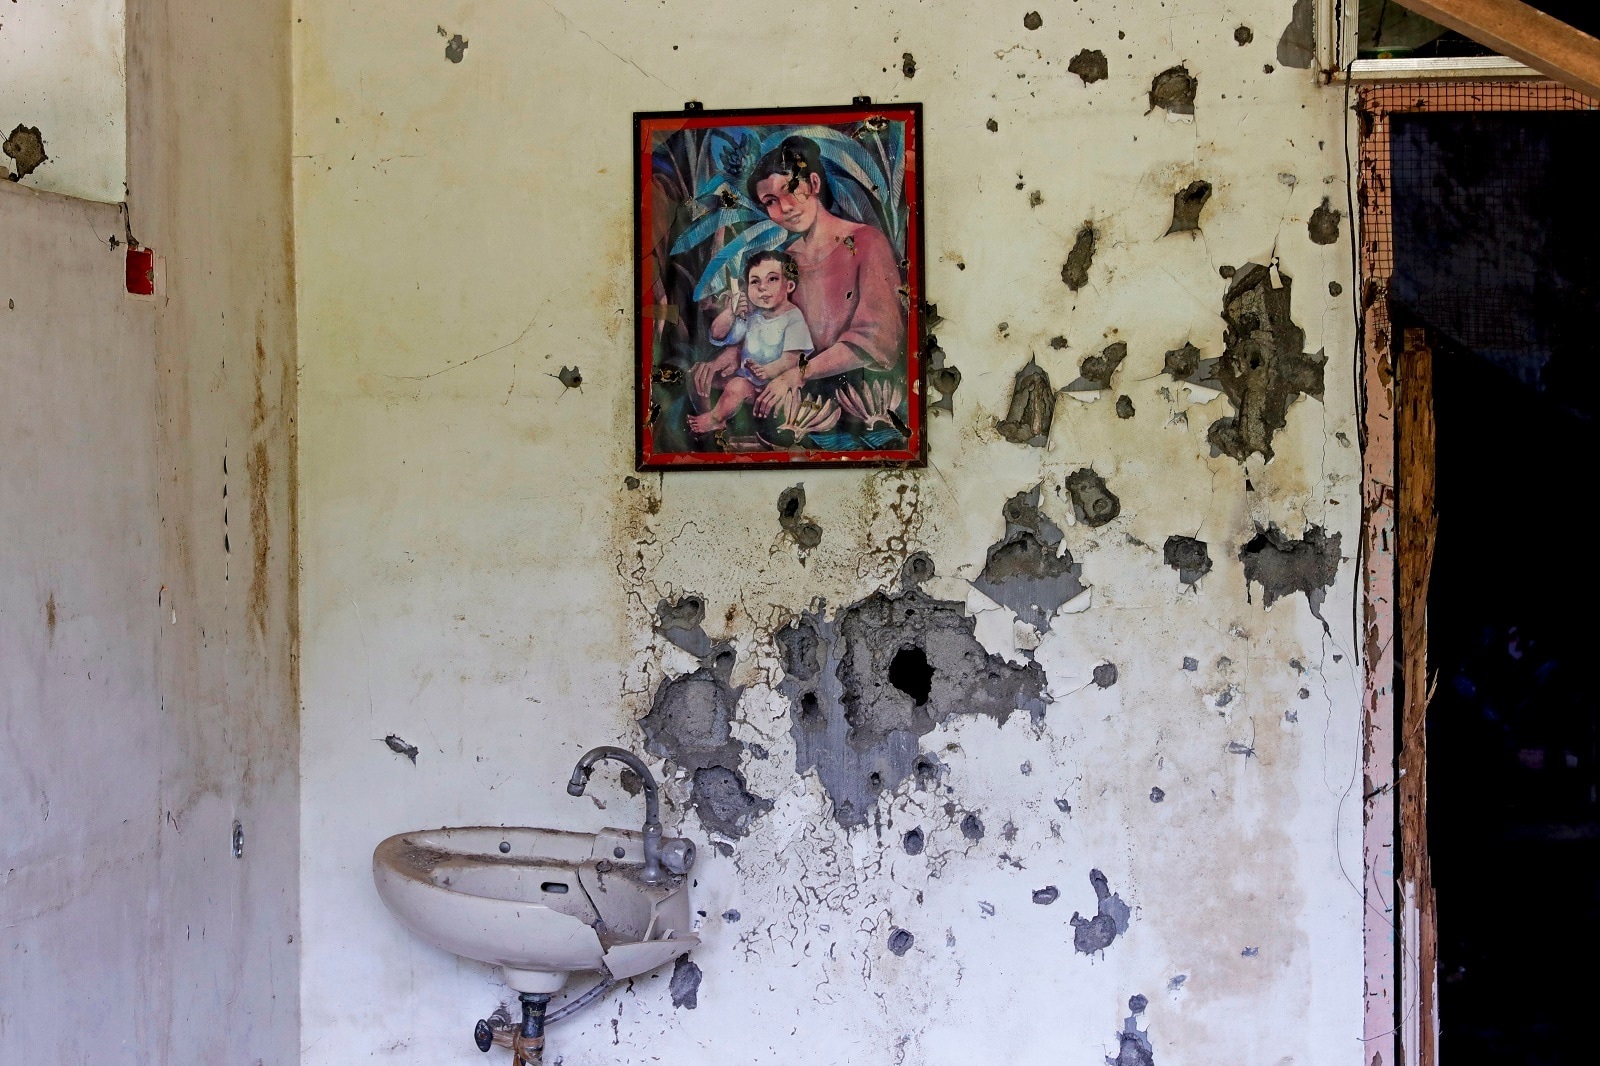 A painting of a mother and a child hangs on a wall at a bullet-riddled structure in Marawi City, Lanao del Sur province, Philippines, May 11, 2019. REUTERS/Eloisa Lopez